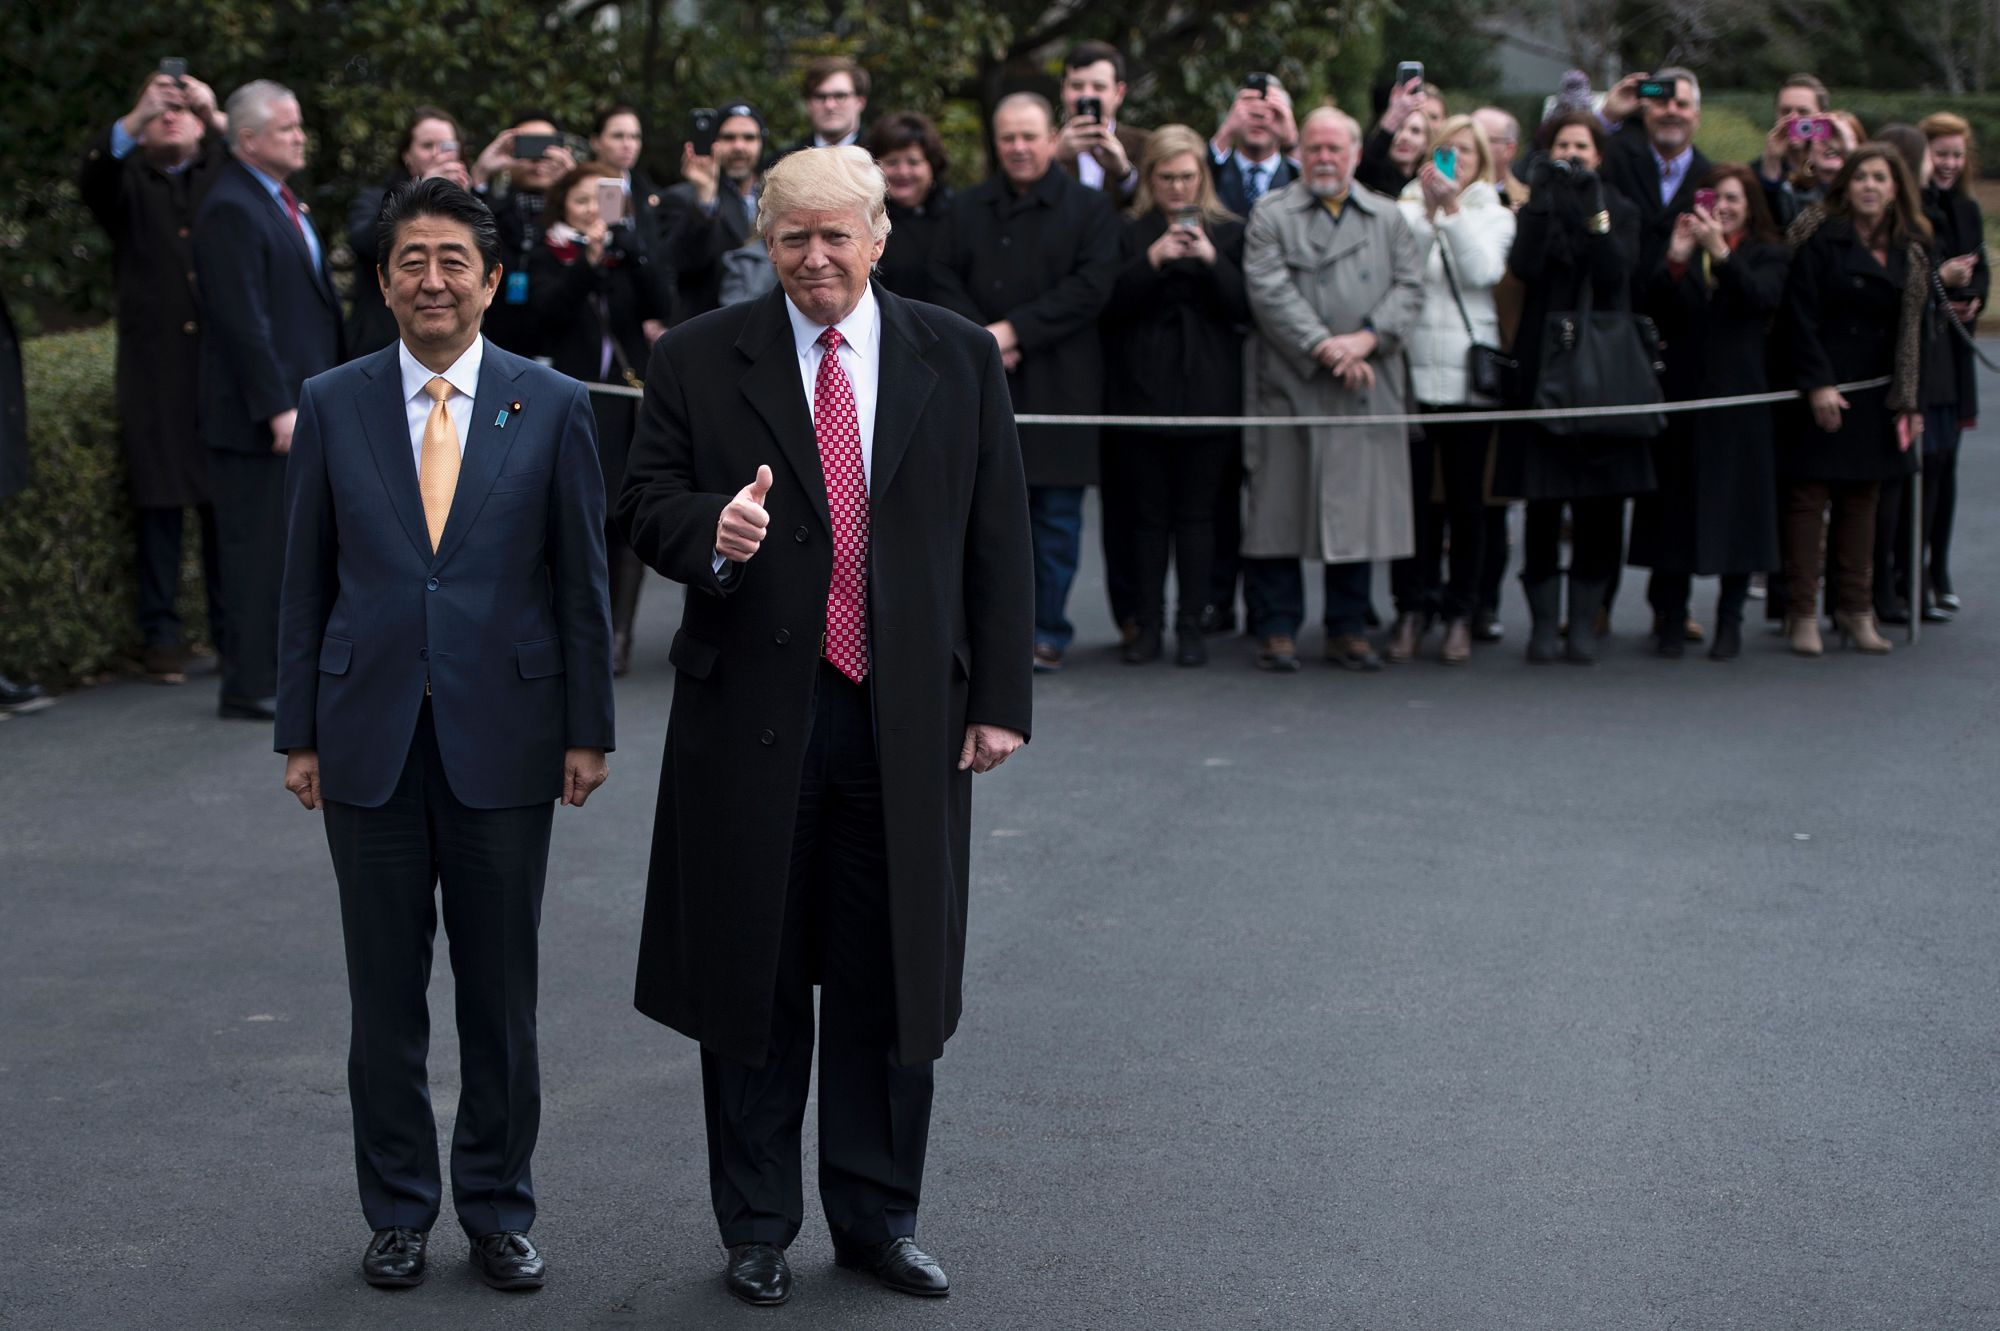 U.S. President Donald Trump gives a thumbs-up while walking to Marine One with Prime Minister Shinzo Abe on the South Lawn of the White House on Friday. | AFP-JIJI